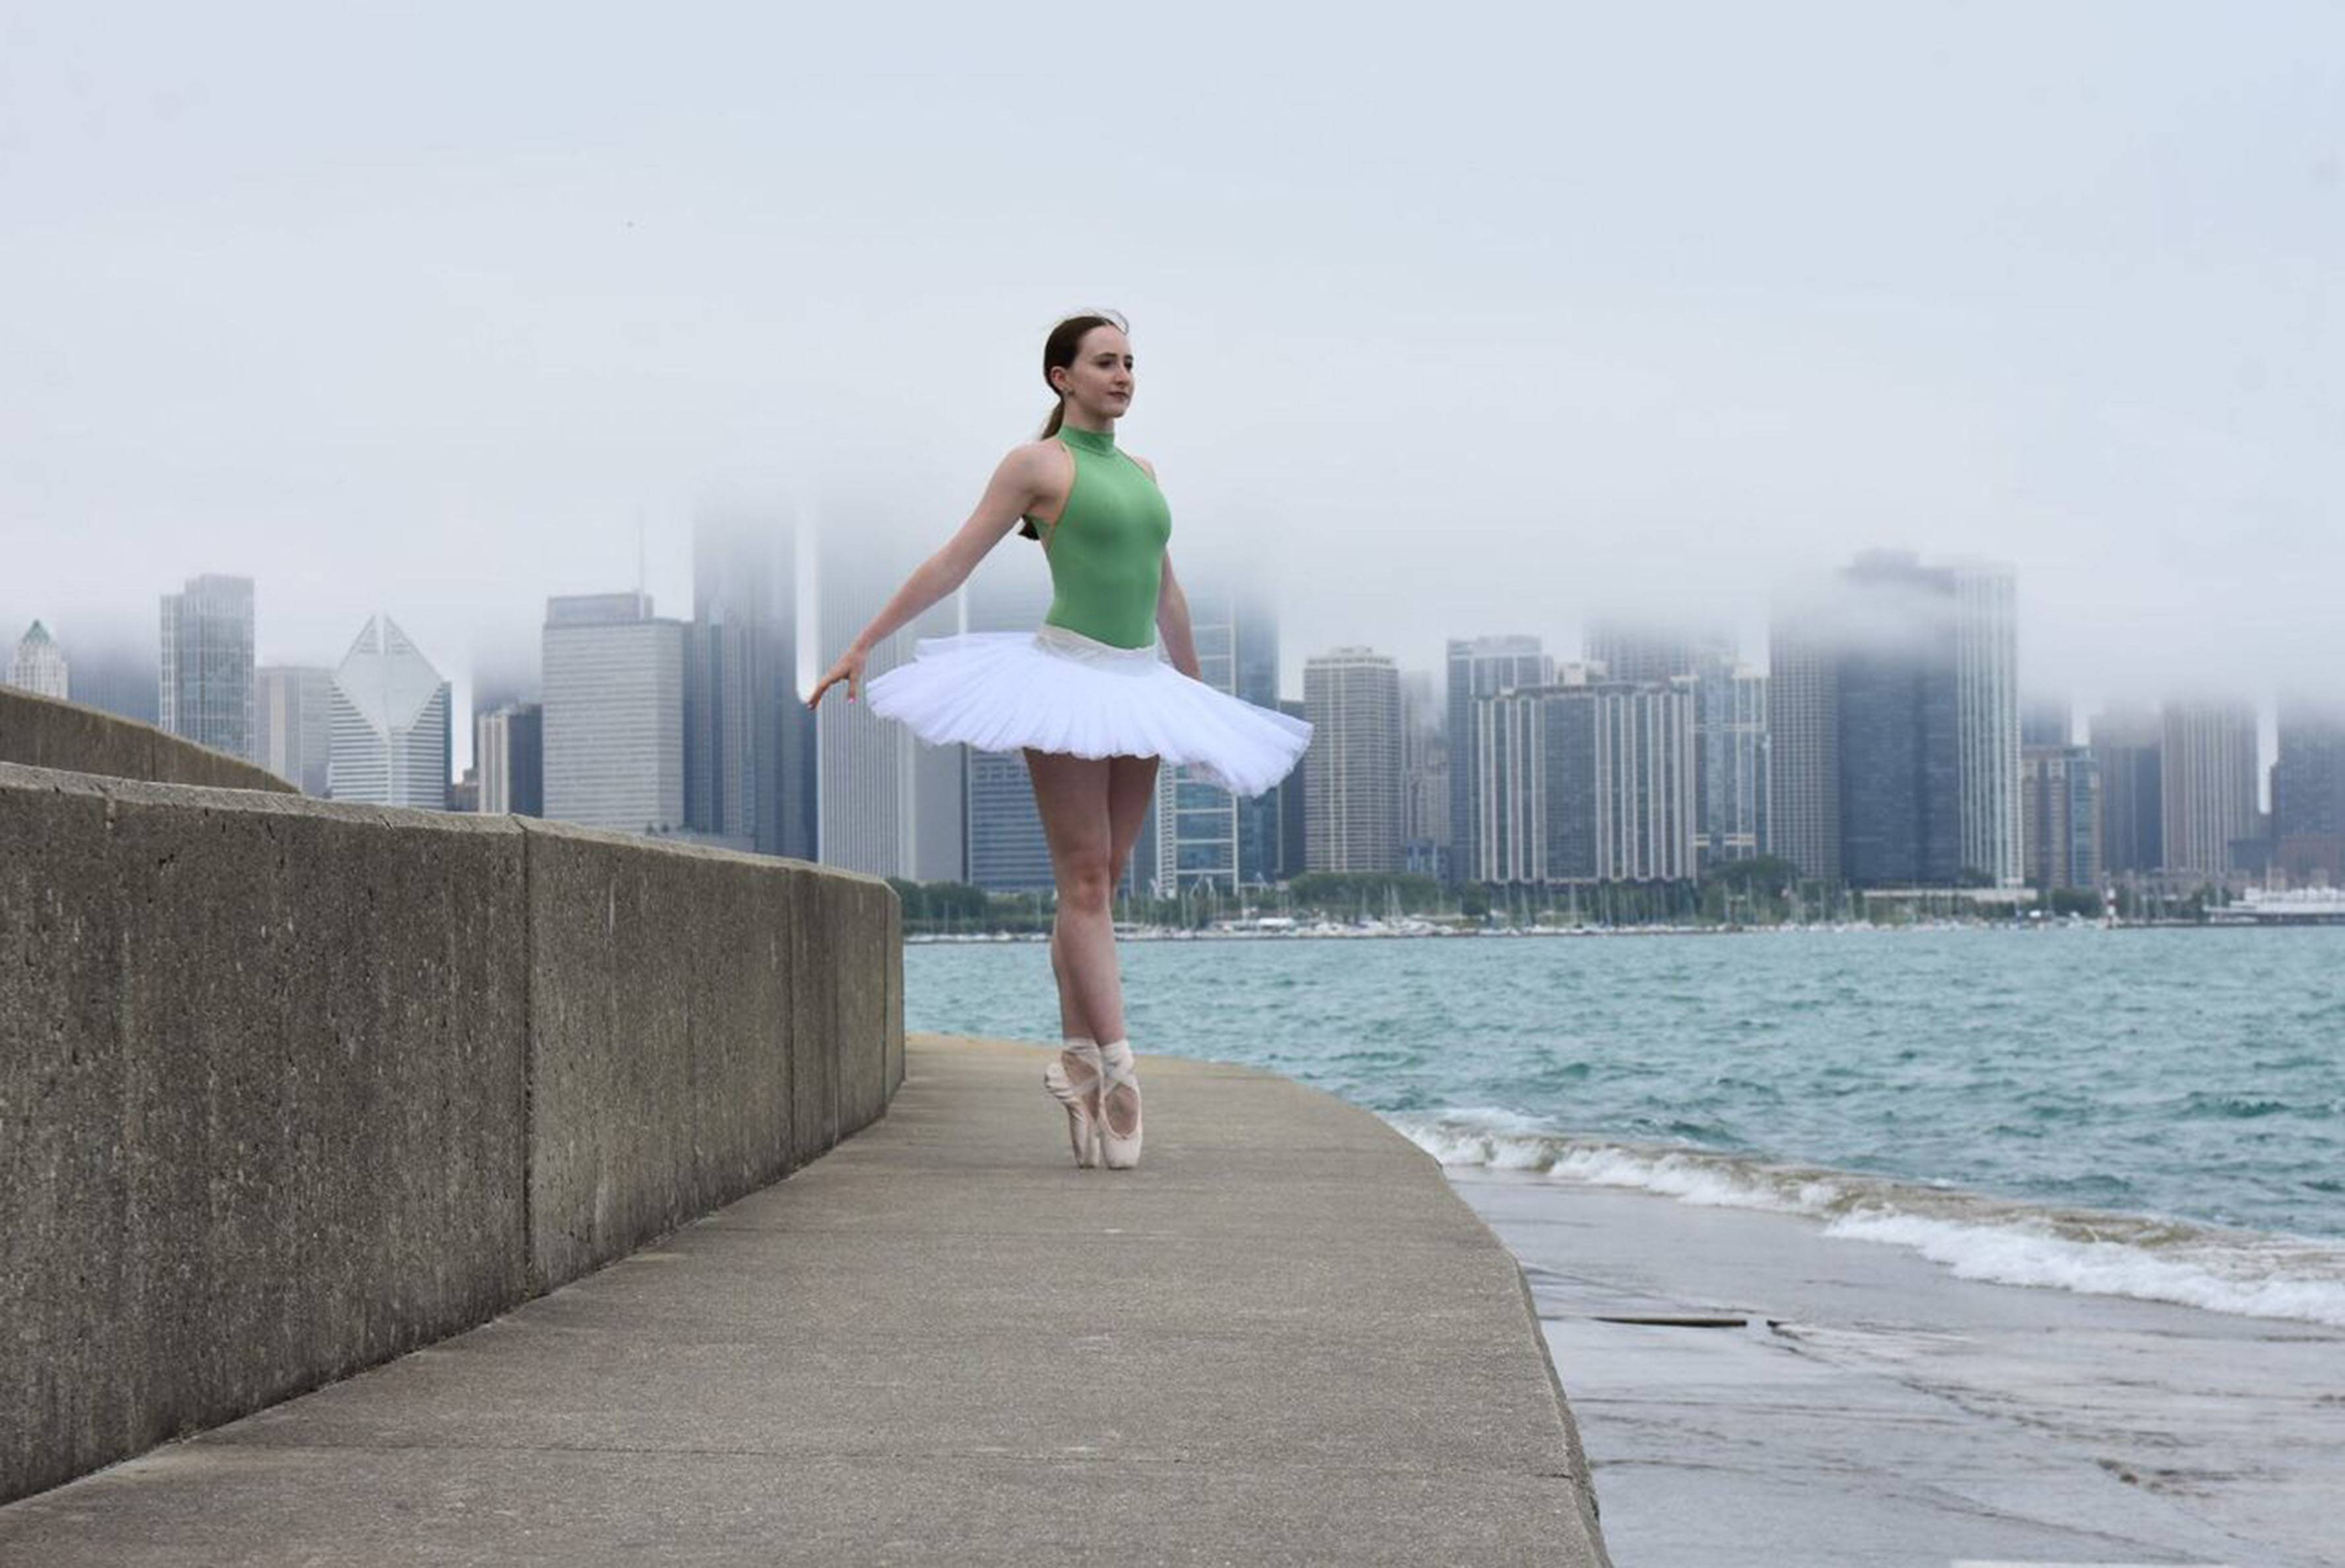 Morgan Clune of Barrington cannot imagine her life without dance, and now, with an acceptance into the elite dance program at The Juilliard School in New York, her vision appears to be a reality.